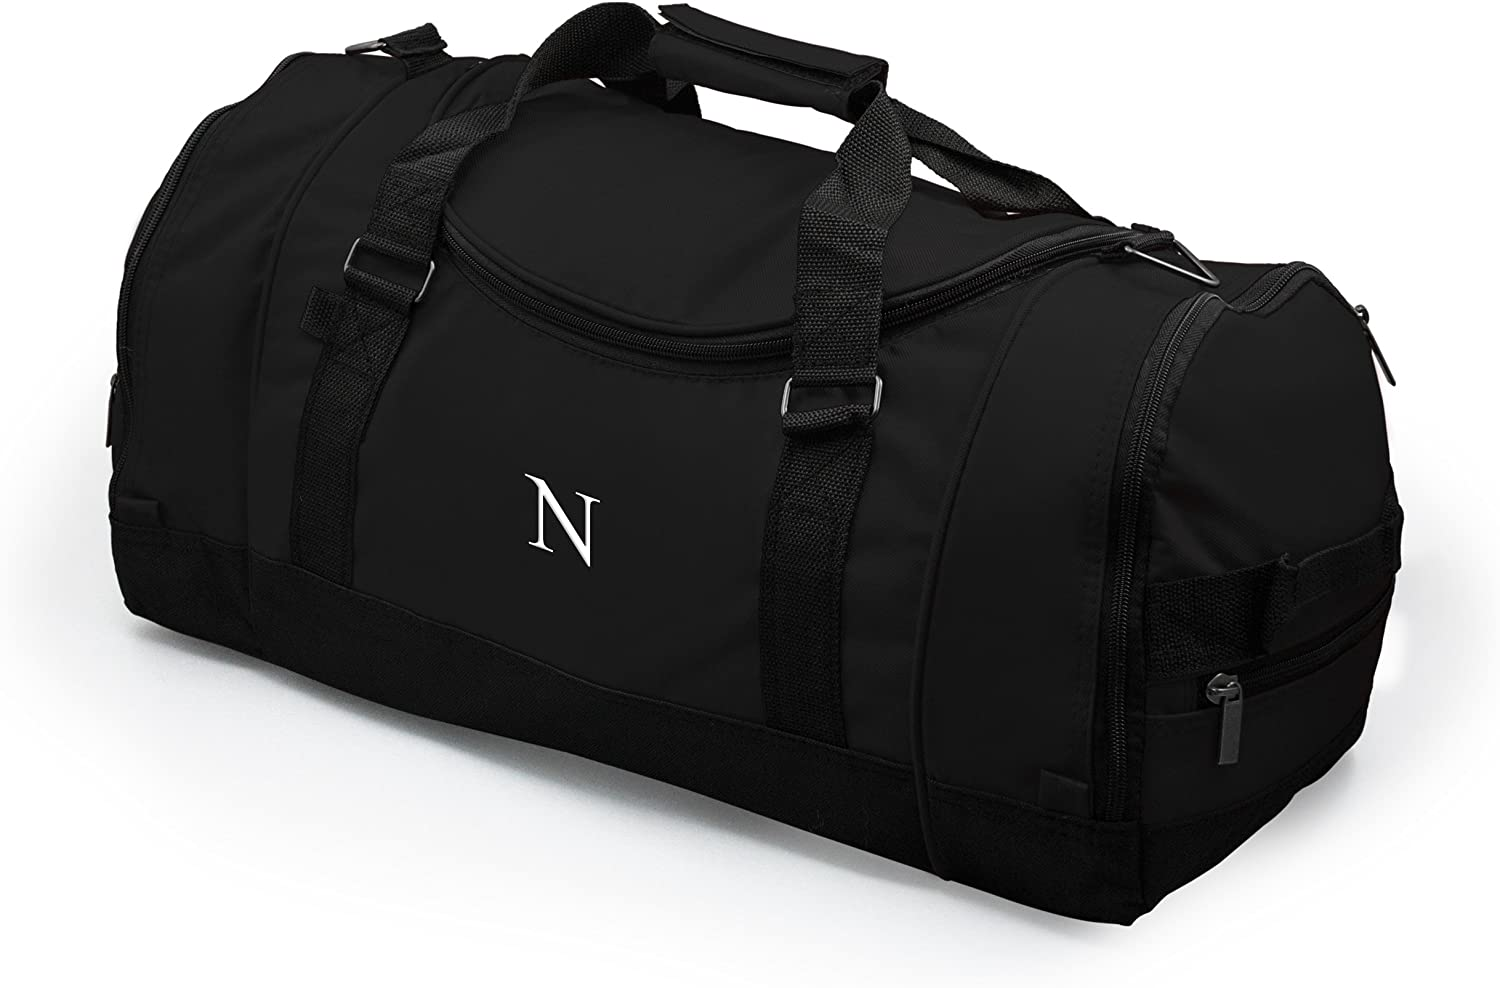 Black Personalized Deluxe Sports Duffle Bag